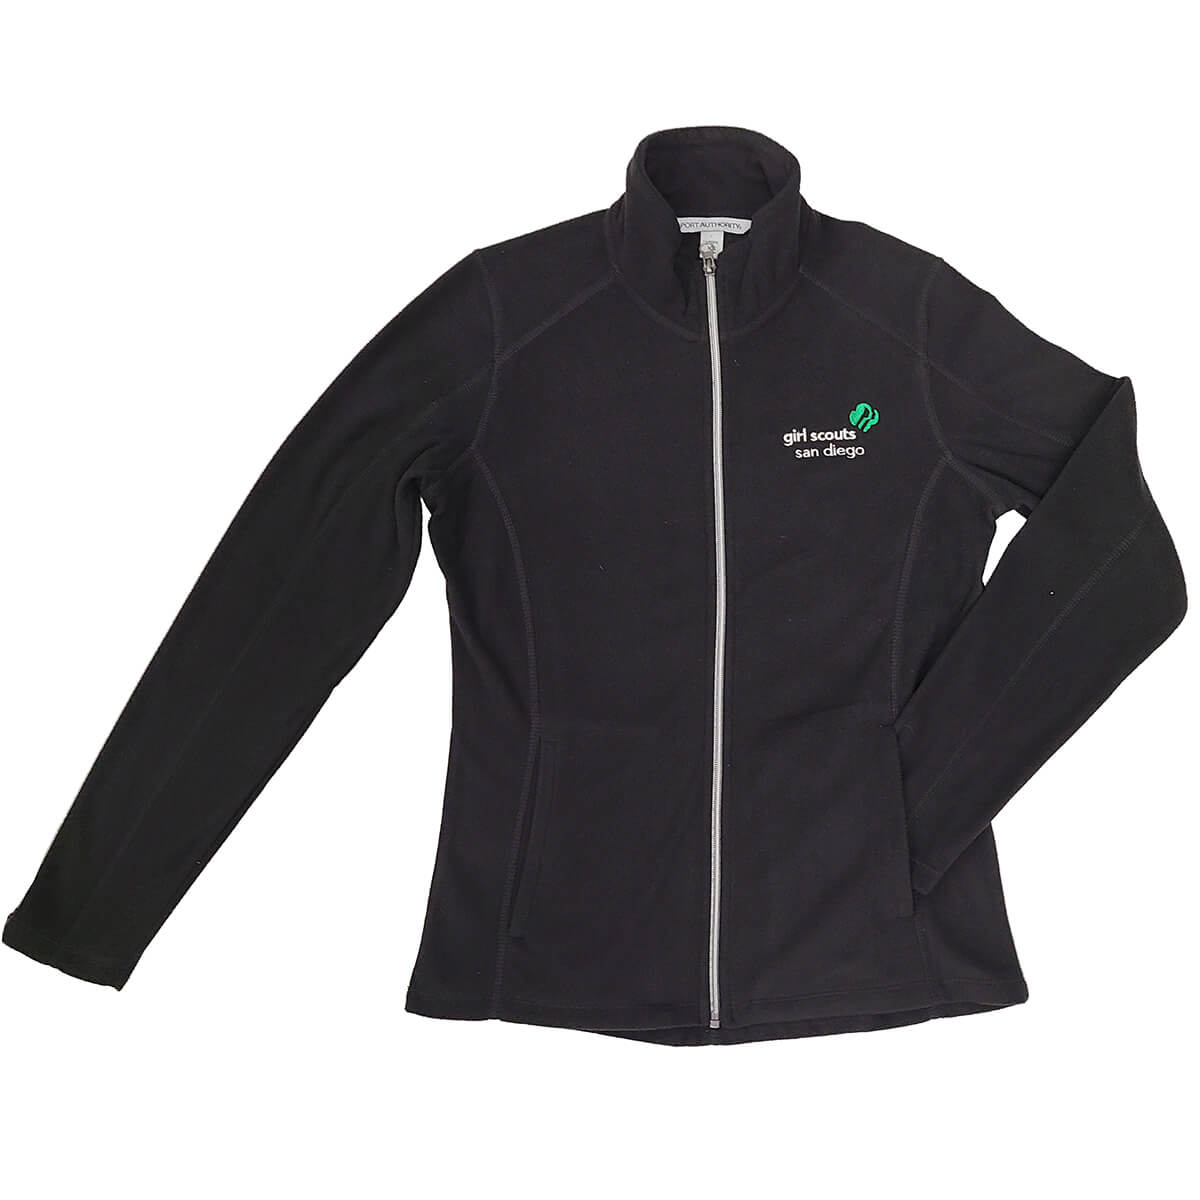 GSSD Fleece Jacket Black